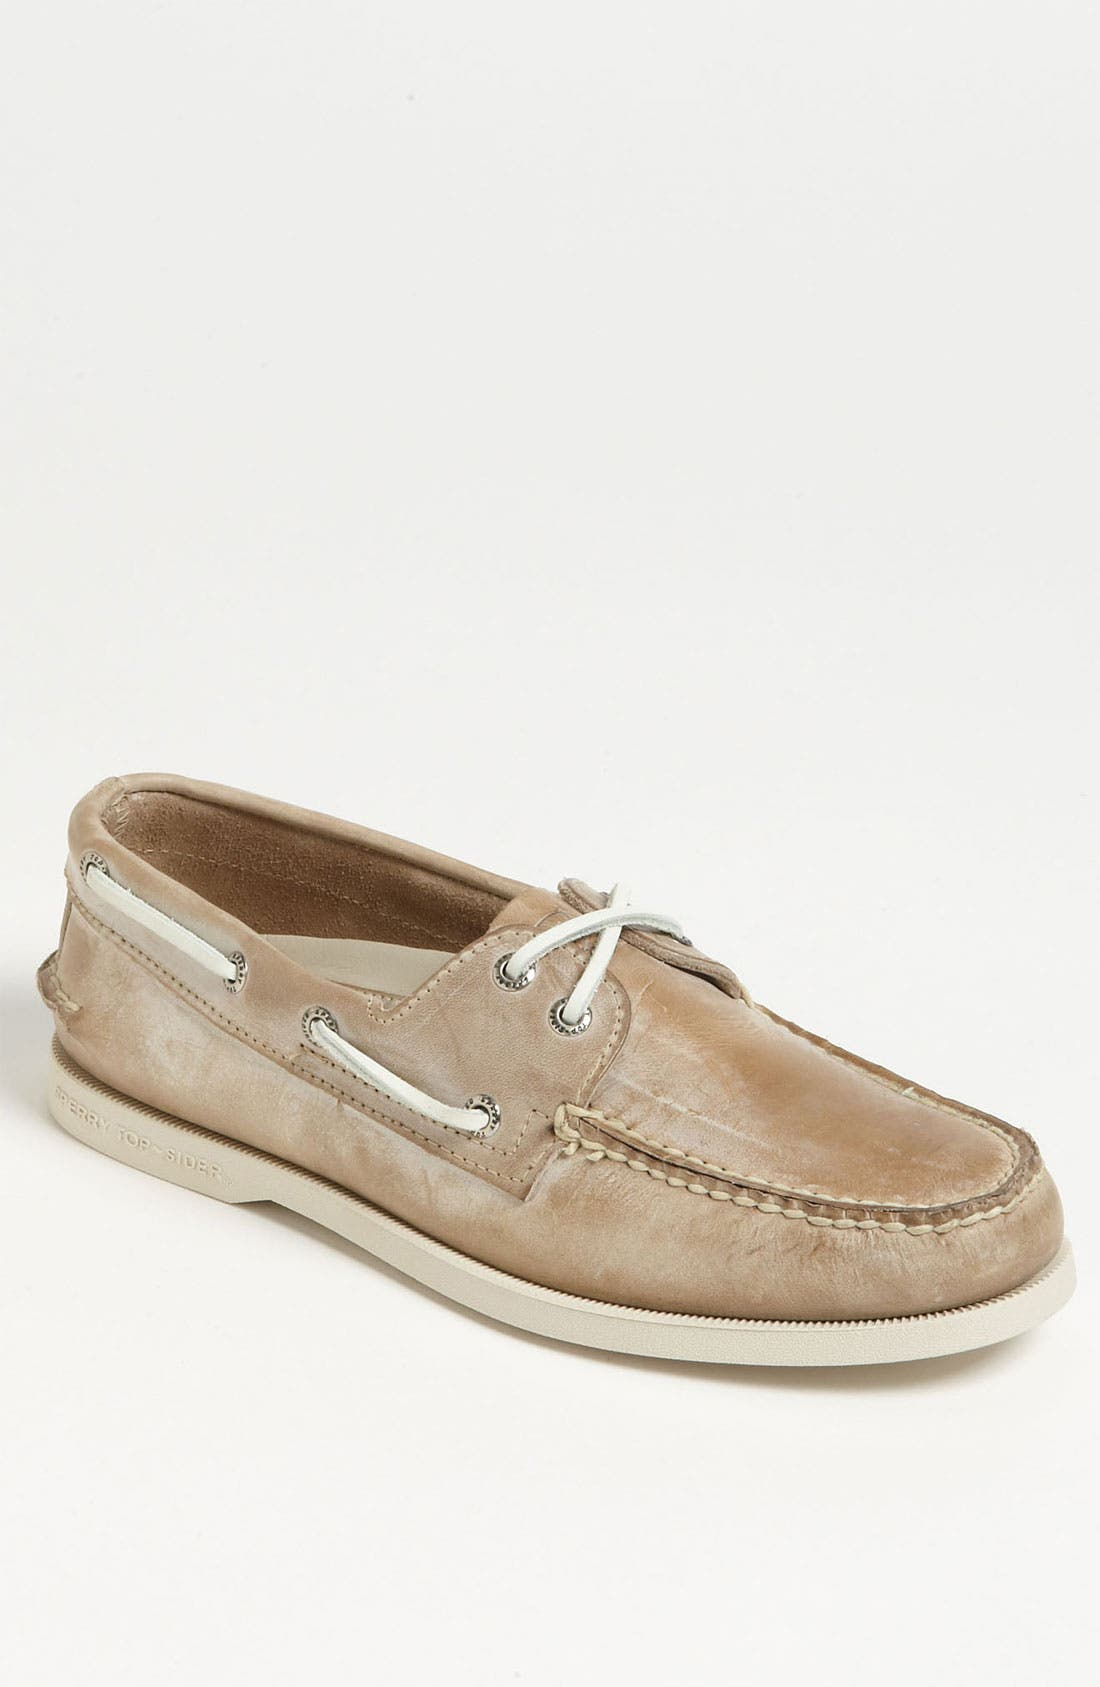 Alternate Image 1 Selected - Sperry Top-Sider® 'Authentic Original - White Wash' Boat Shoe (Men)